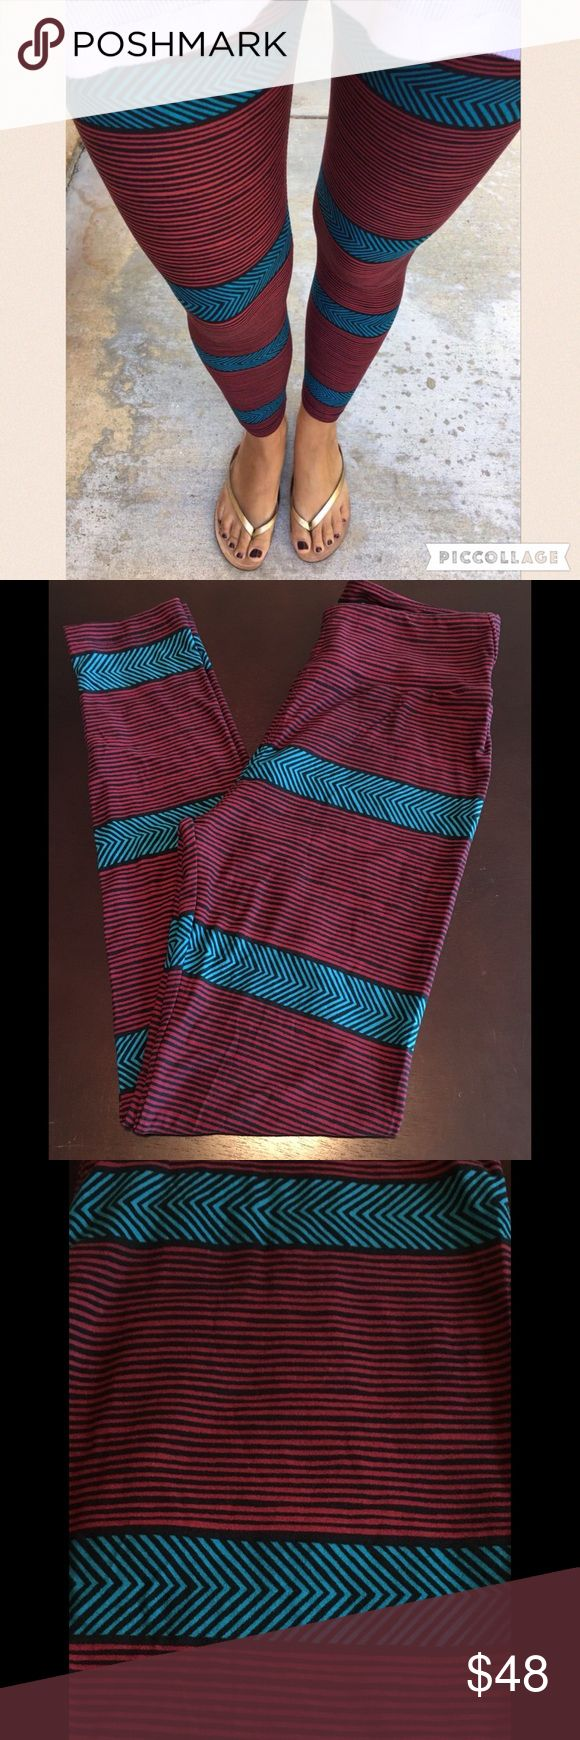 LULAROE OS Maroon Teal Black Stripe leggings NWOT Brand new without tag (Came without tag from Consultant). SF/PF home.  New Colorway of an older unicorn print.  The yellow/black version is a major unicorn and super hard to find.  These are destined to become a unicorn also.  I SHIP FAST.  CHECK MY REVIEWS :)  **Less on Ⓜ️erc**  Tags: Red, blue, One Size, striped, Chevron LuLaRoe Pants Leggings